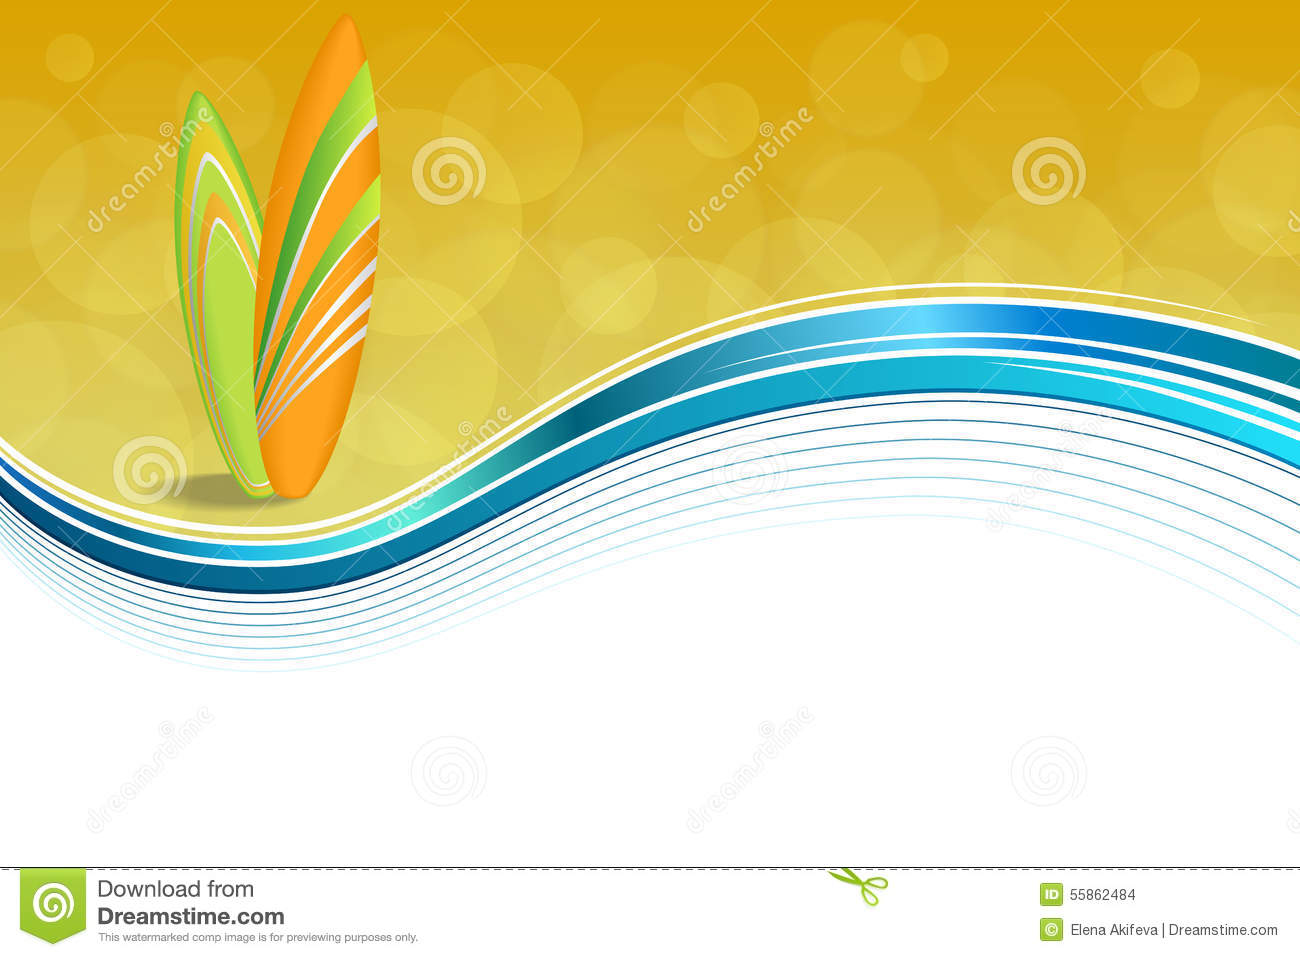 Unduh 77 Koleksi Background Vector Orange Green Terbaik